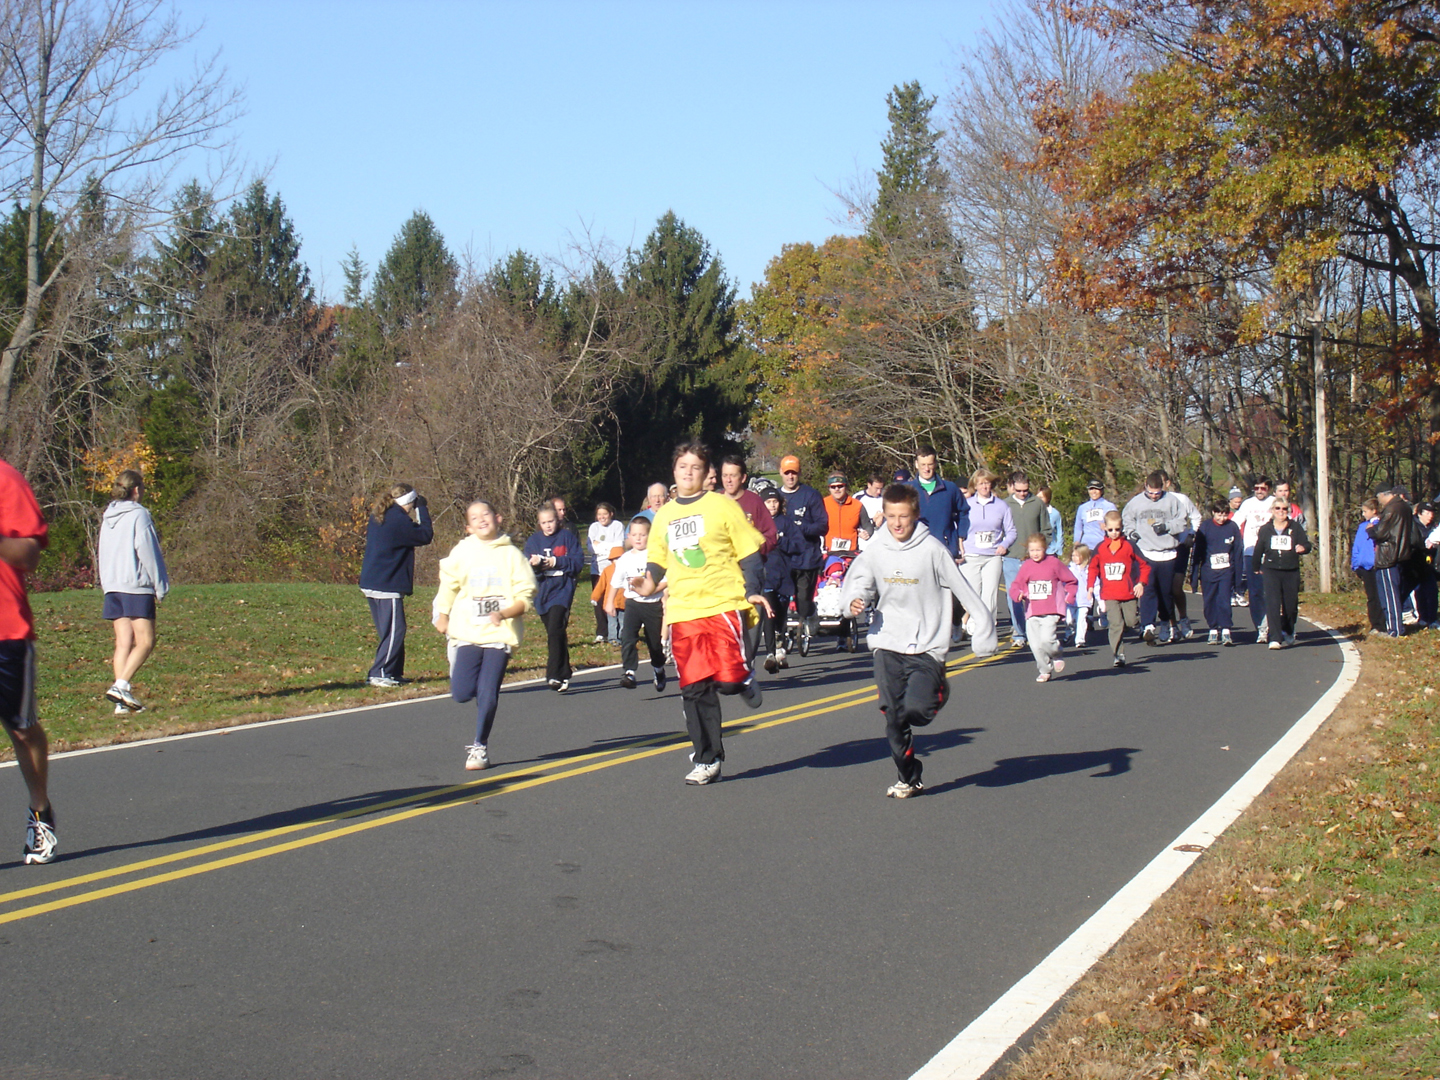 Ready For Somerset County's Annual Turkey Trot?